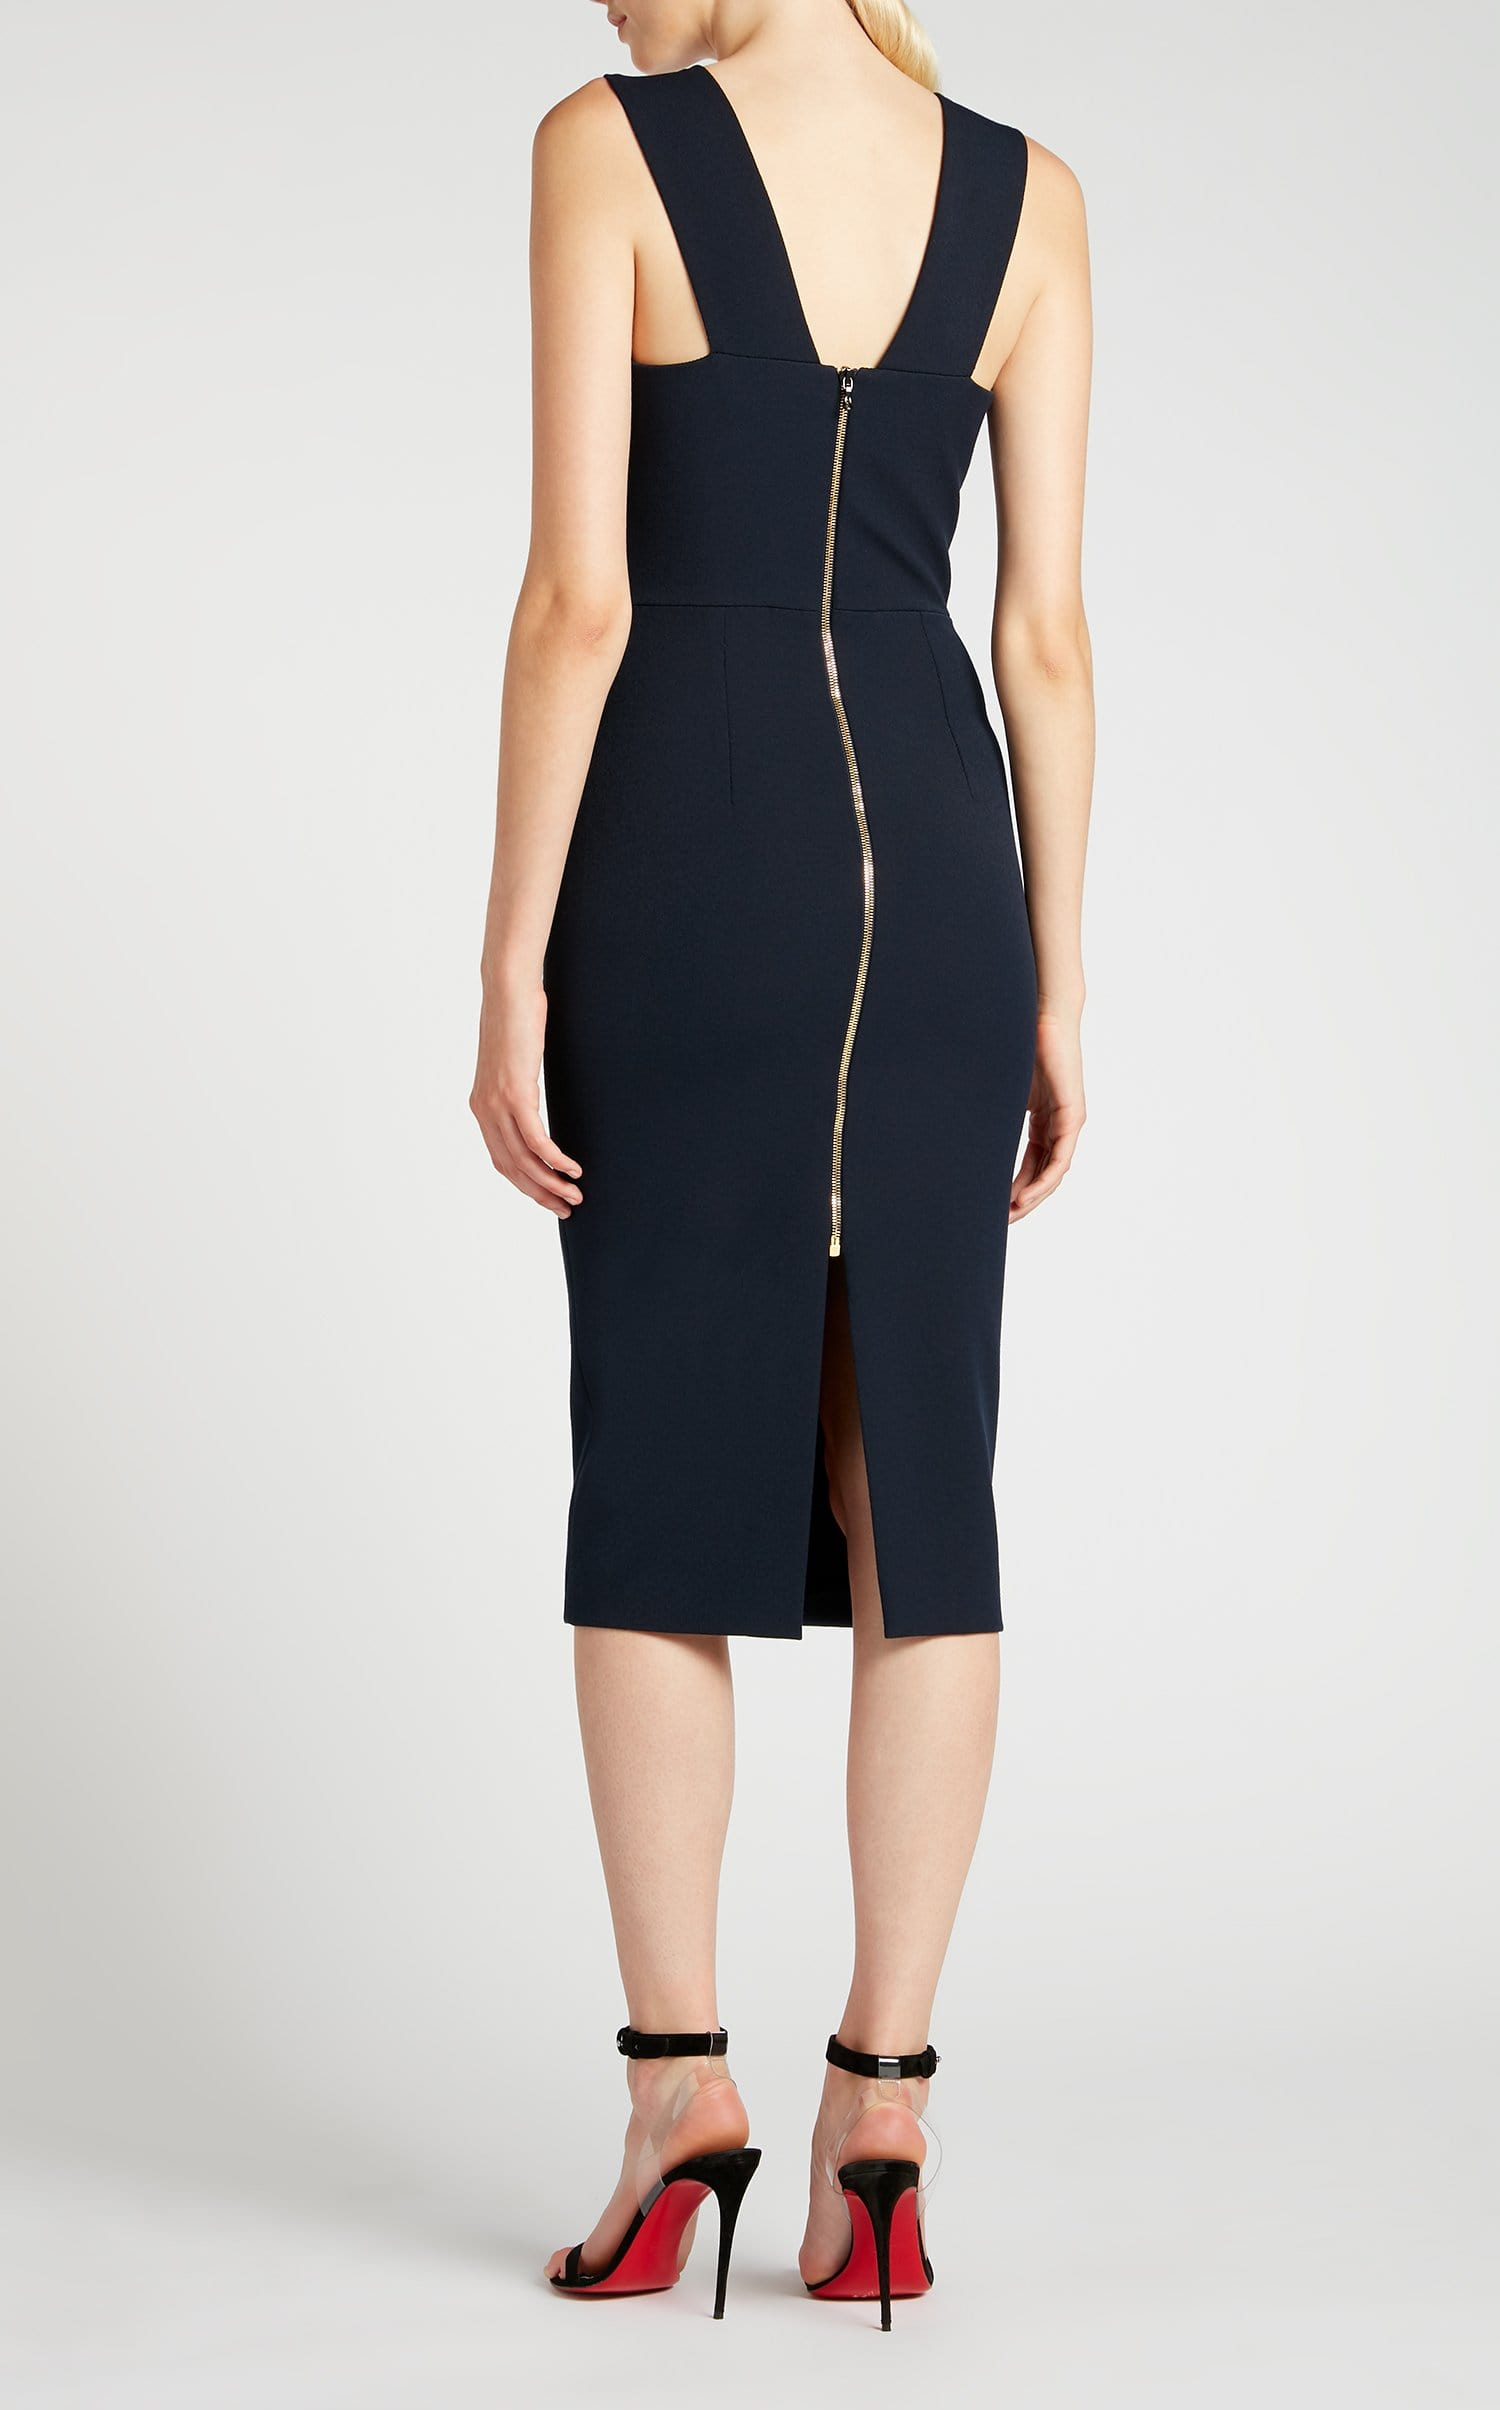 Coleby Dress In Navy from Roland Mouret